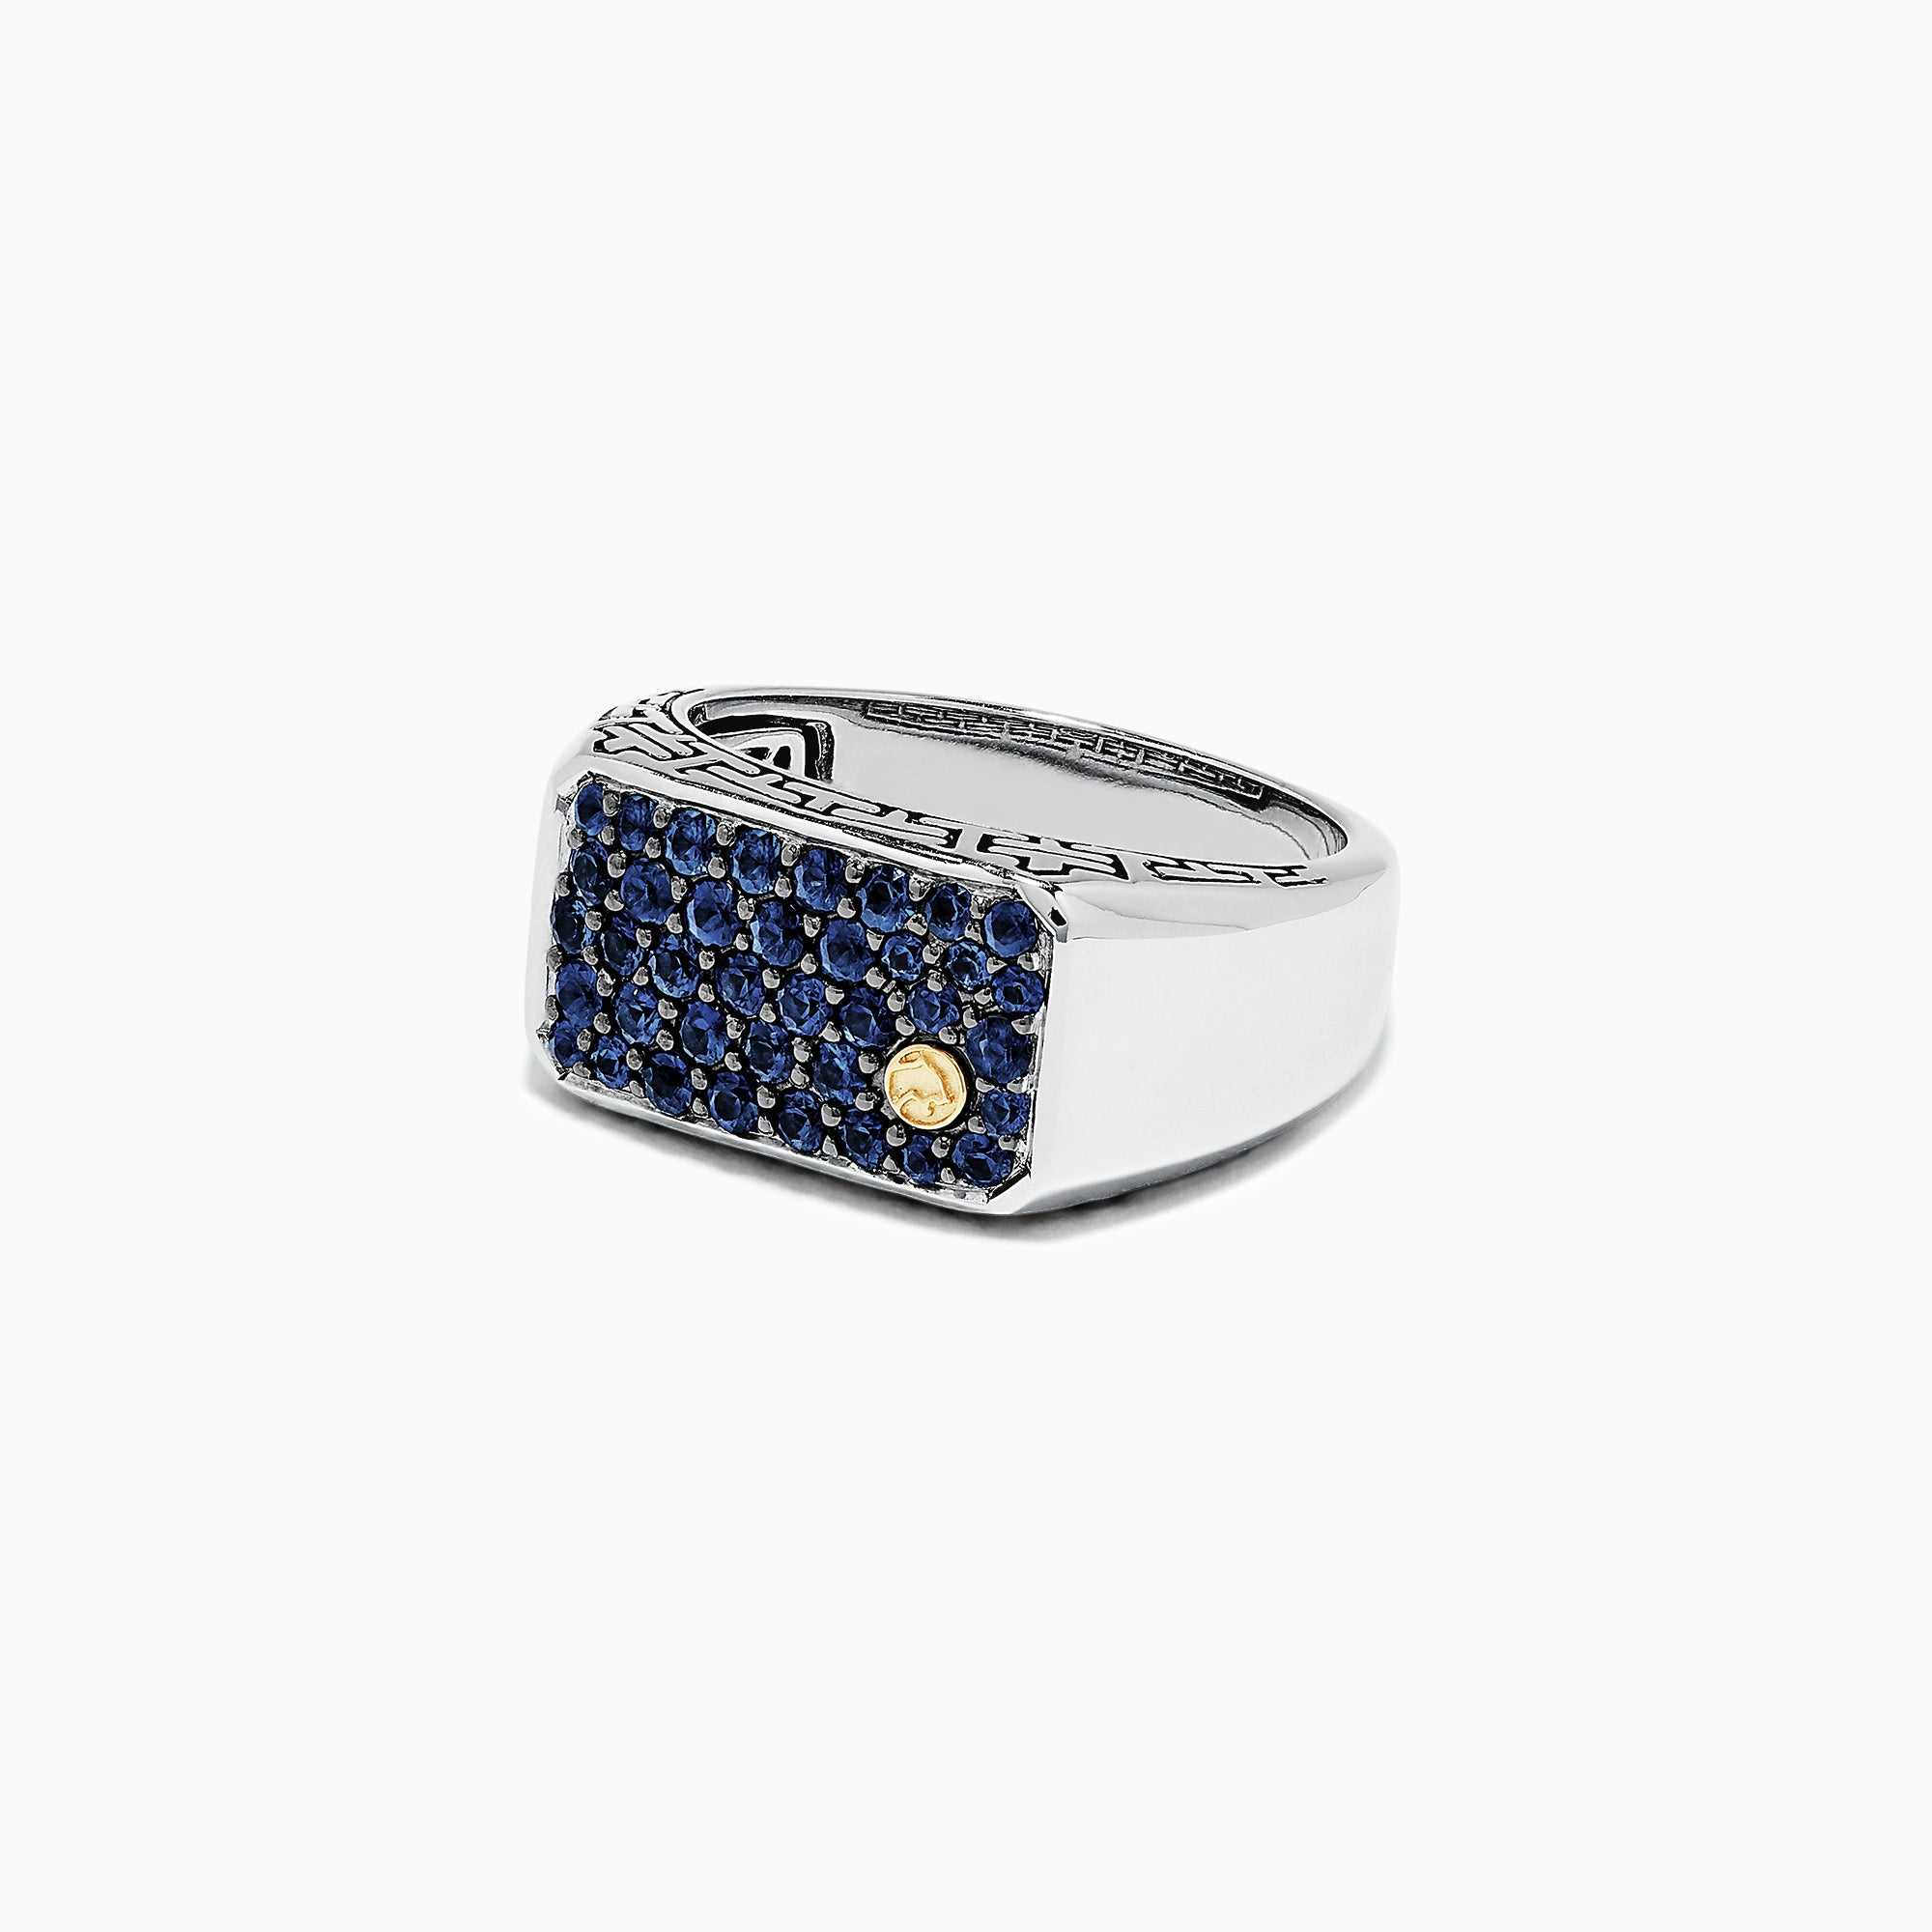 Effy Men's Sterling Silver and Blue Sapphire Ring, 1.35 TCW